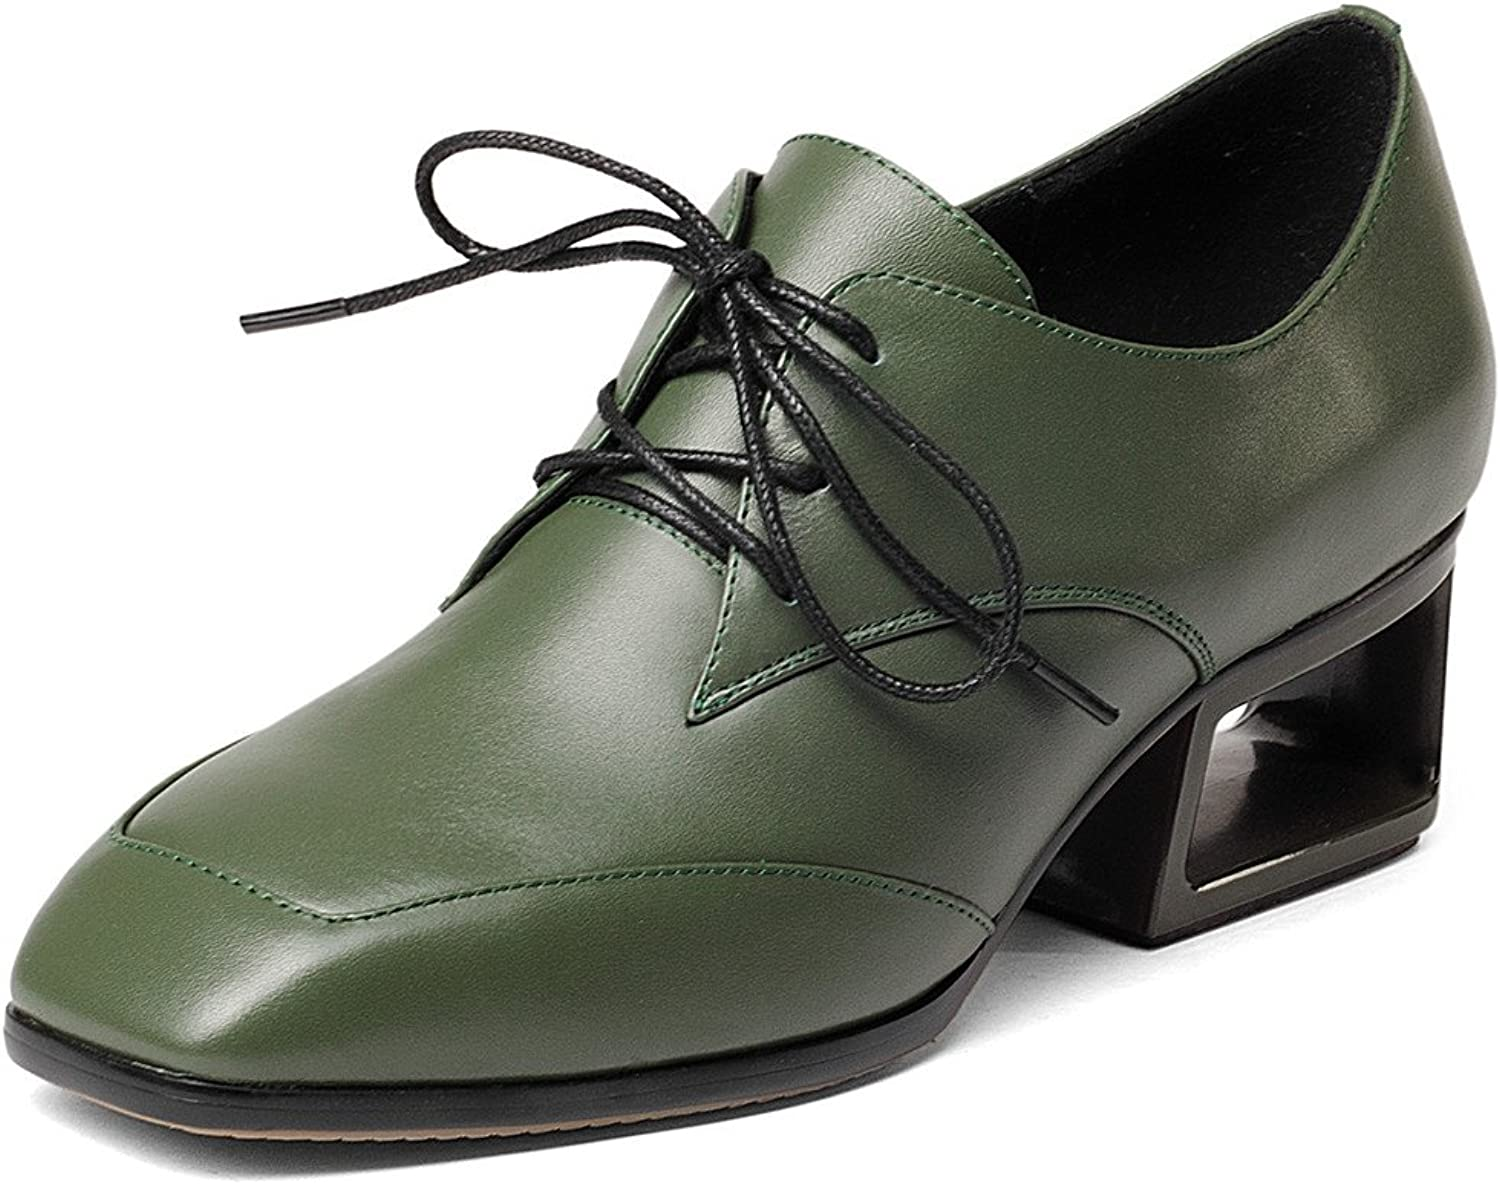 Nine Seven Women's Chunky Heel Oxfords, Square Toe Lace Up Handmade Causal Comfort Pumps shoes